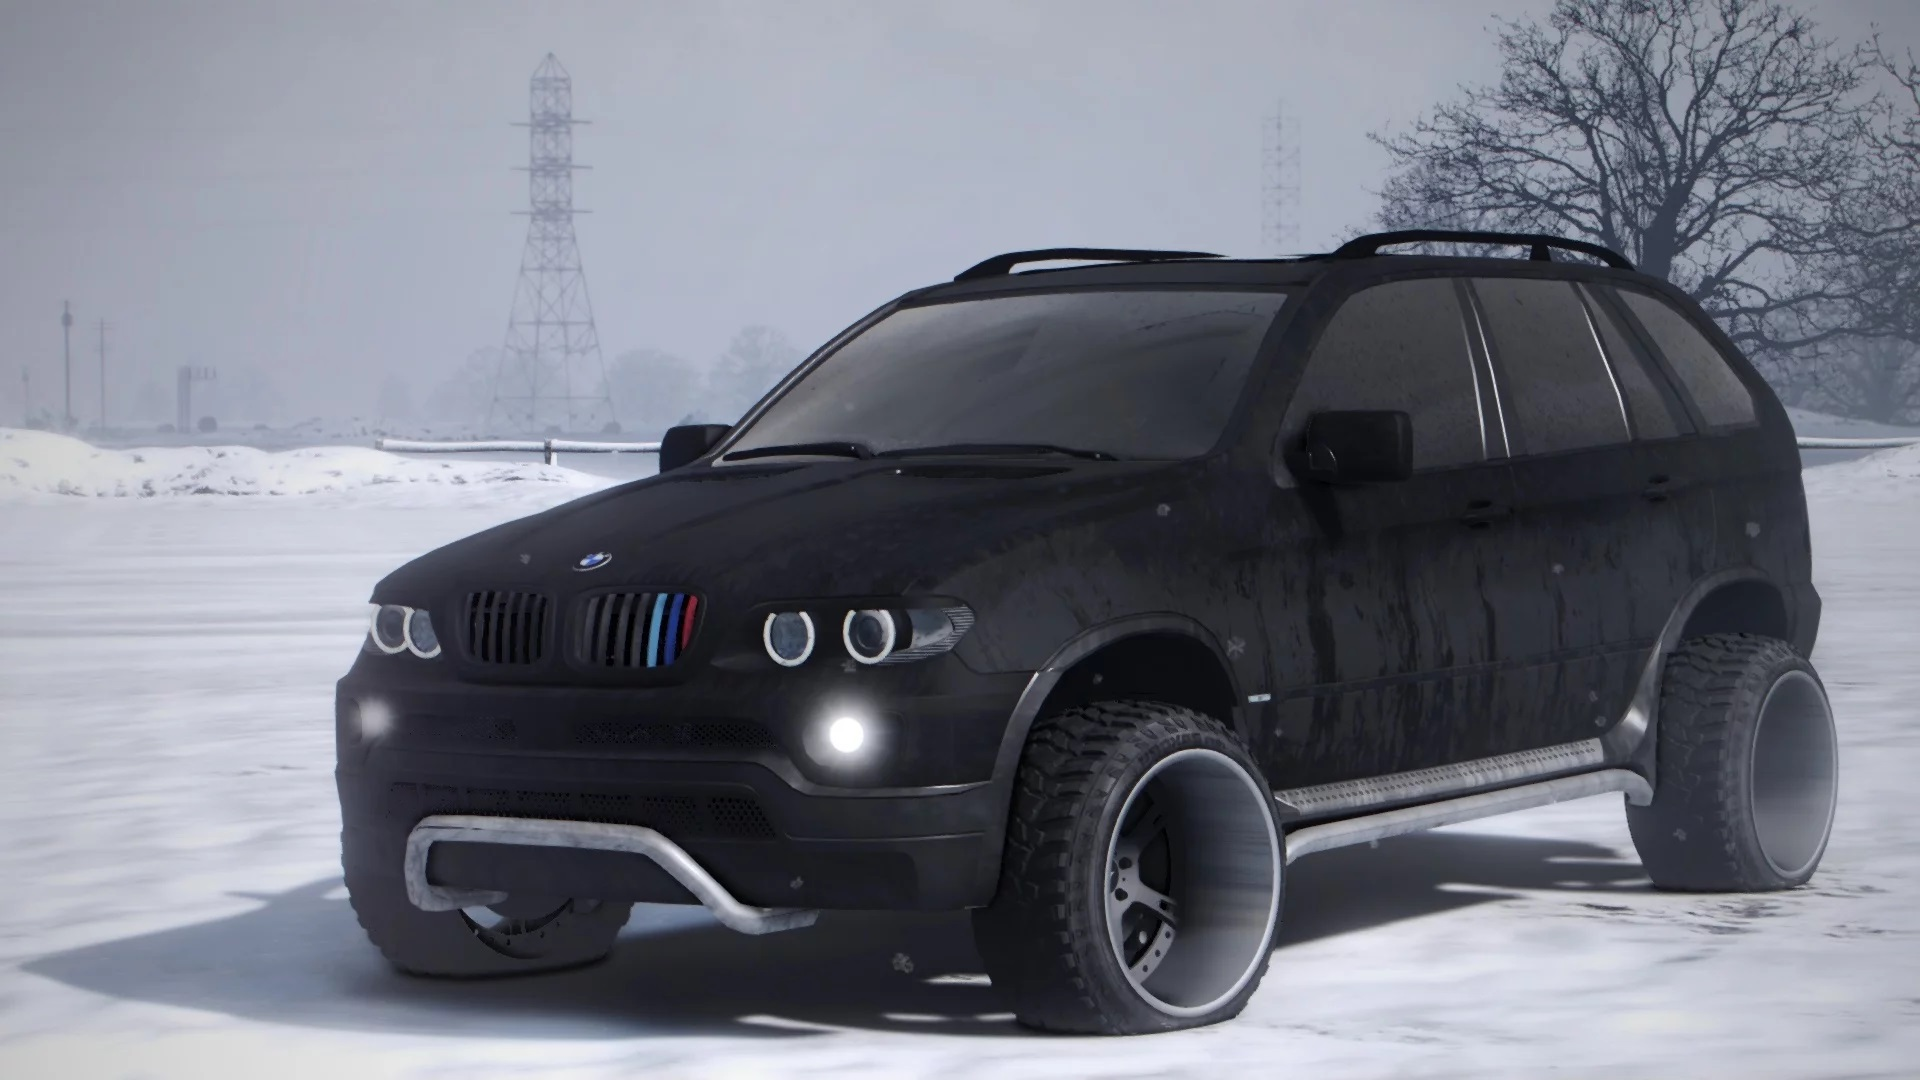 2006 Bmw X5 4 8is Individual E53 Fl Add On Replace Tuning Extras 1 0 Gta5mod Net